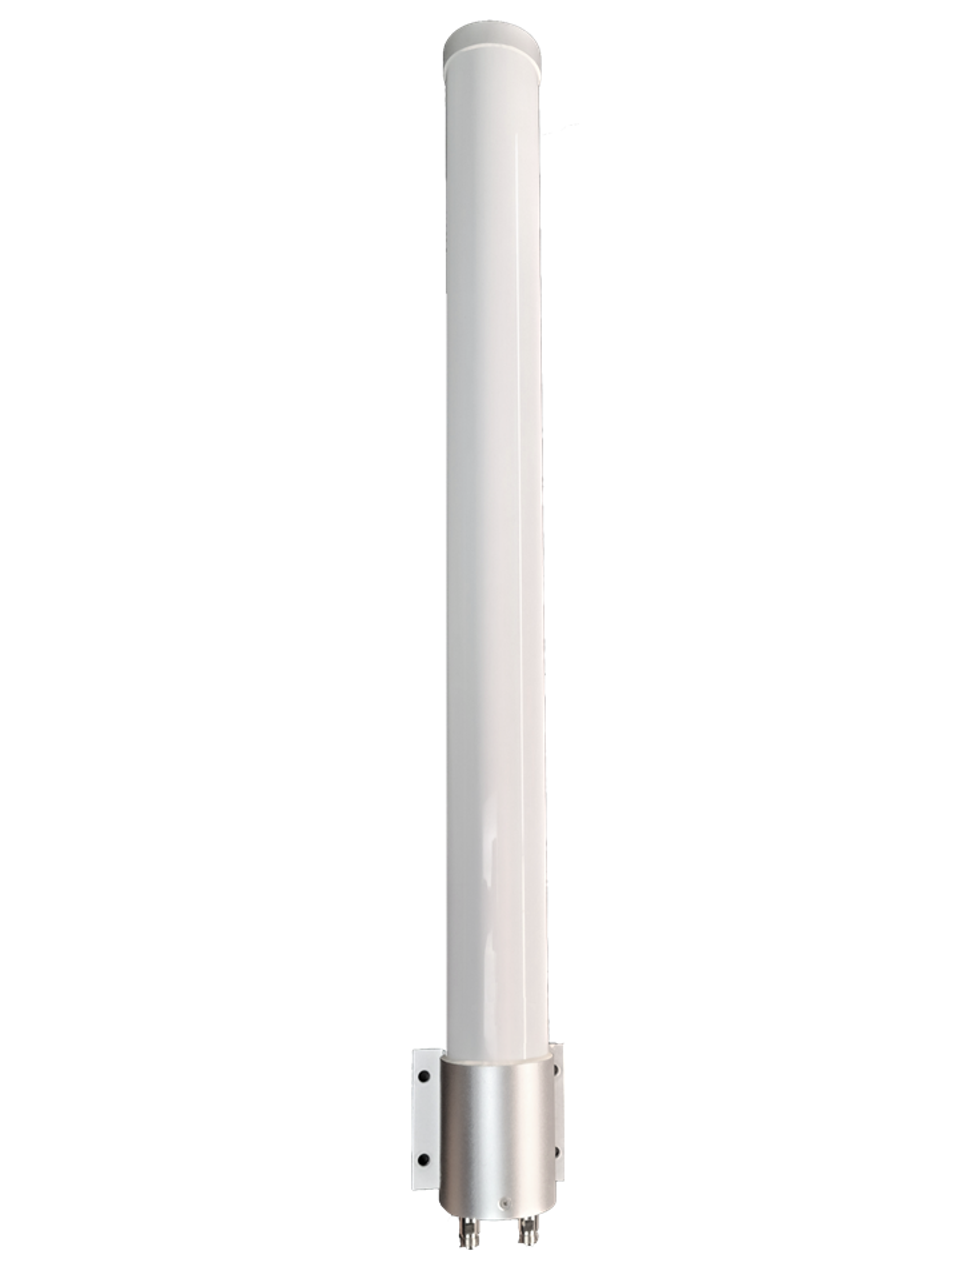 M39T T-Mobile (Band 71 Optimized) MIMO 2 x Cellular 4G LTE CBRS 5G M2M IoT Antenna w/Bracket Mount - 2 x N Female